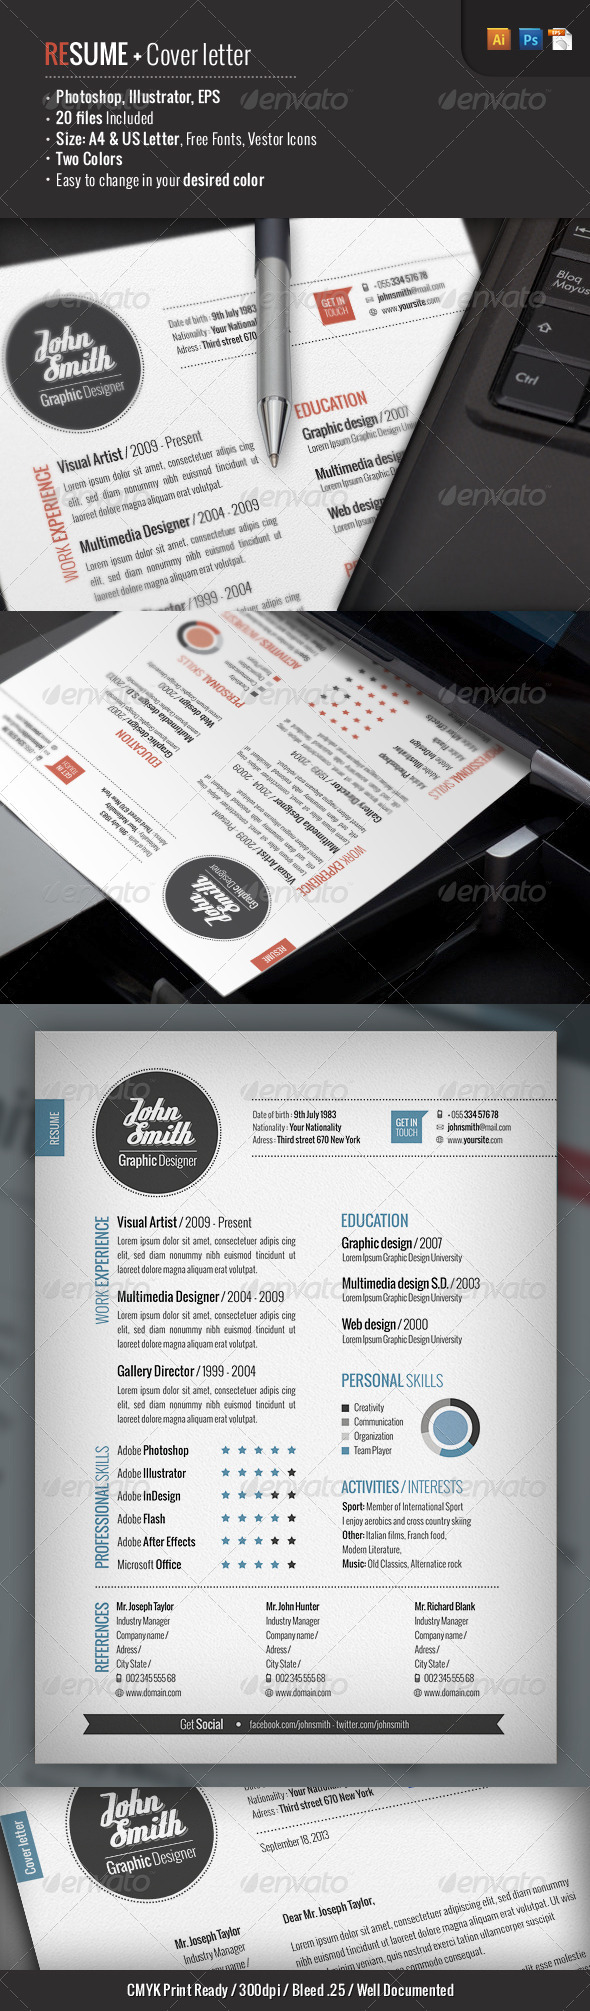 2 Piece   Resume + Cover Letter - Resumes Stationery